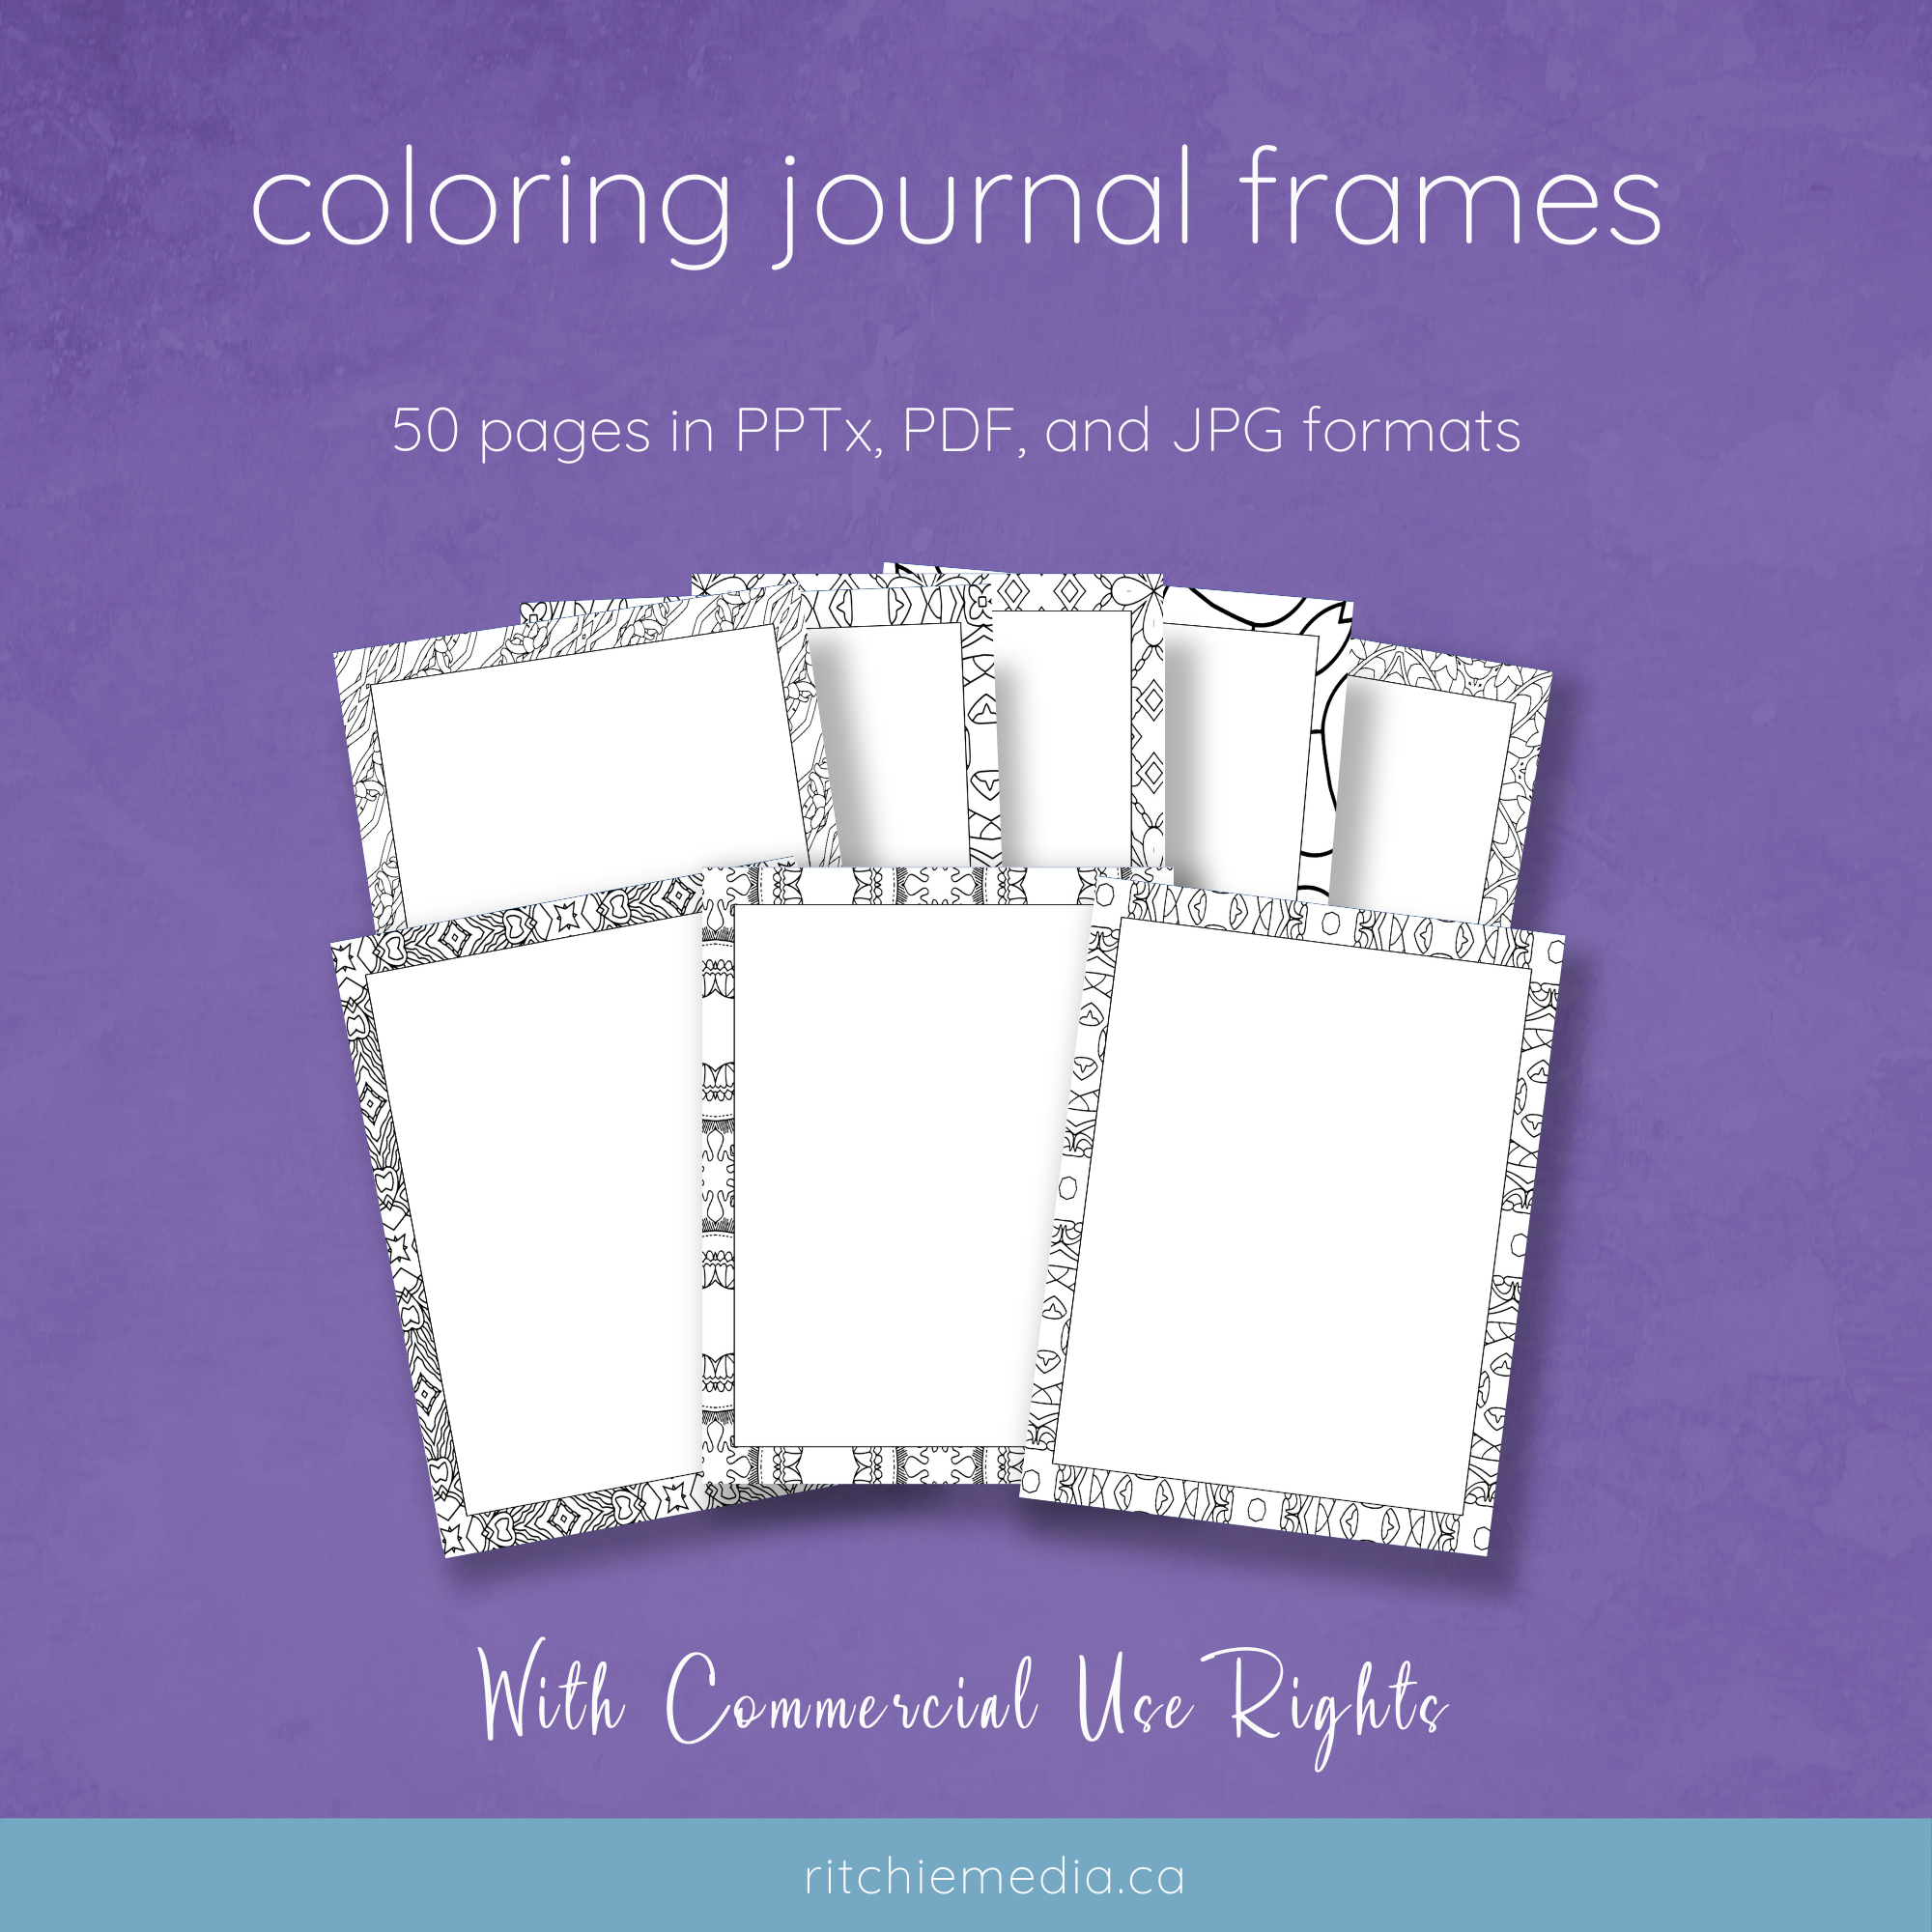 coloring journal pages mockup